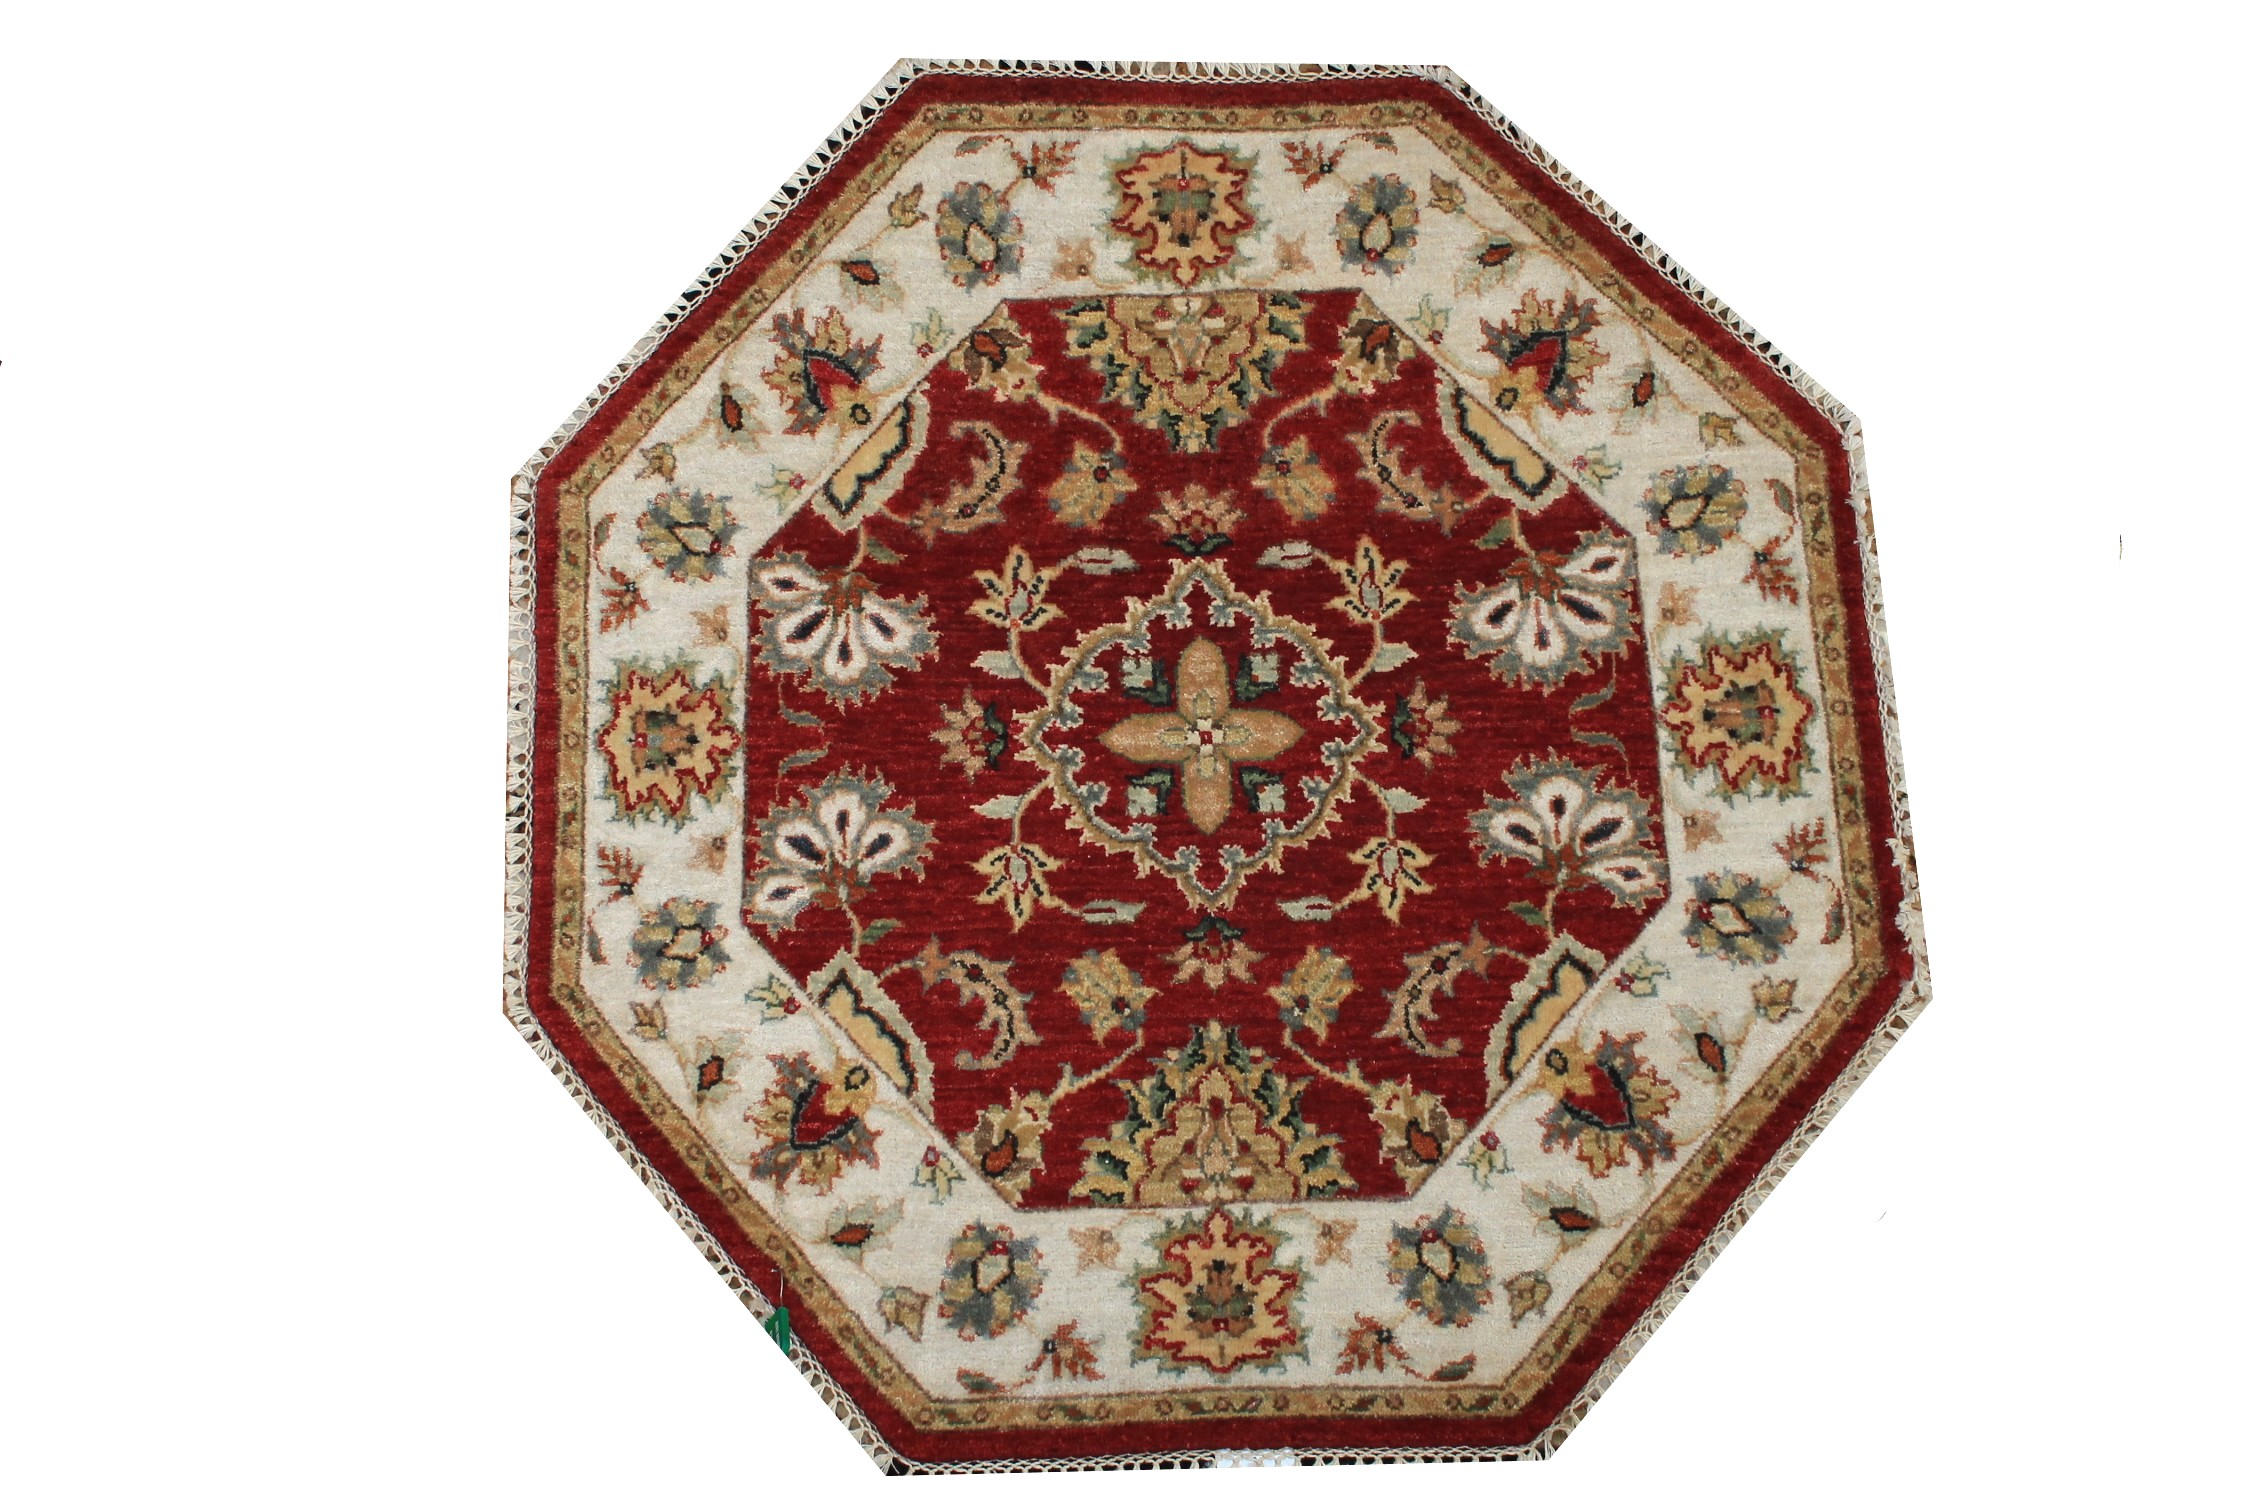 3 ft. Round & Square Traditional Hand Knotted Wool Area Rug - MR024254